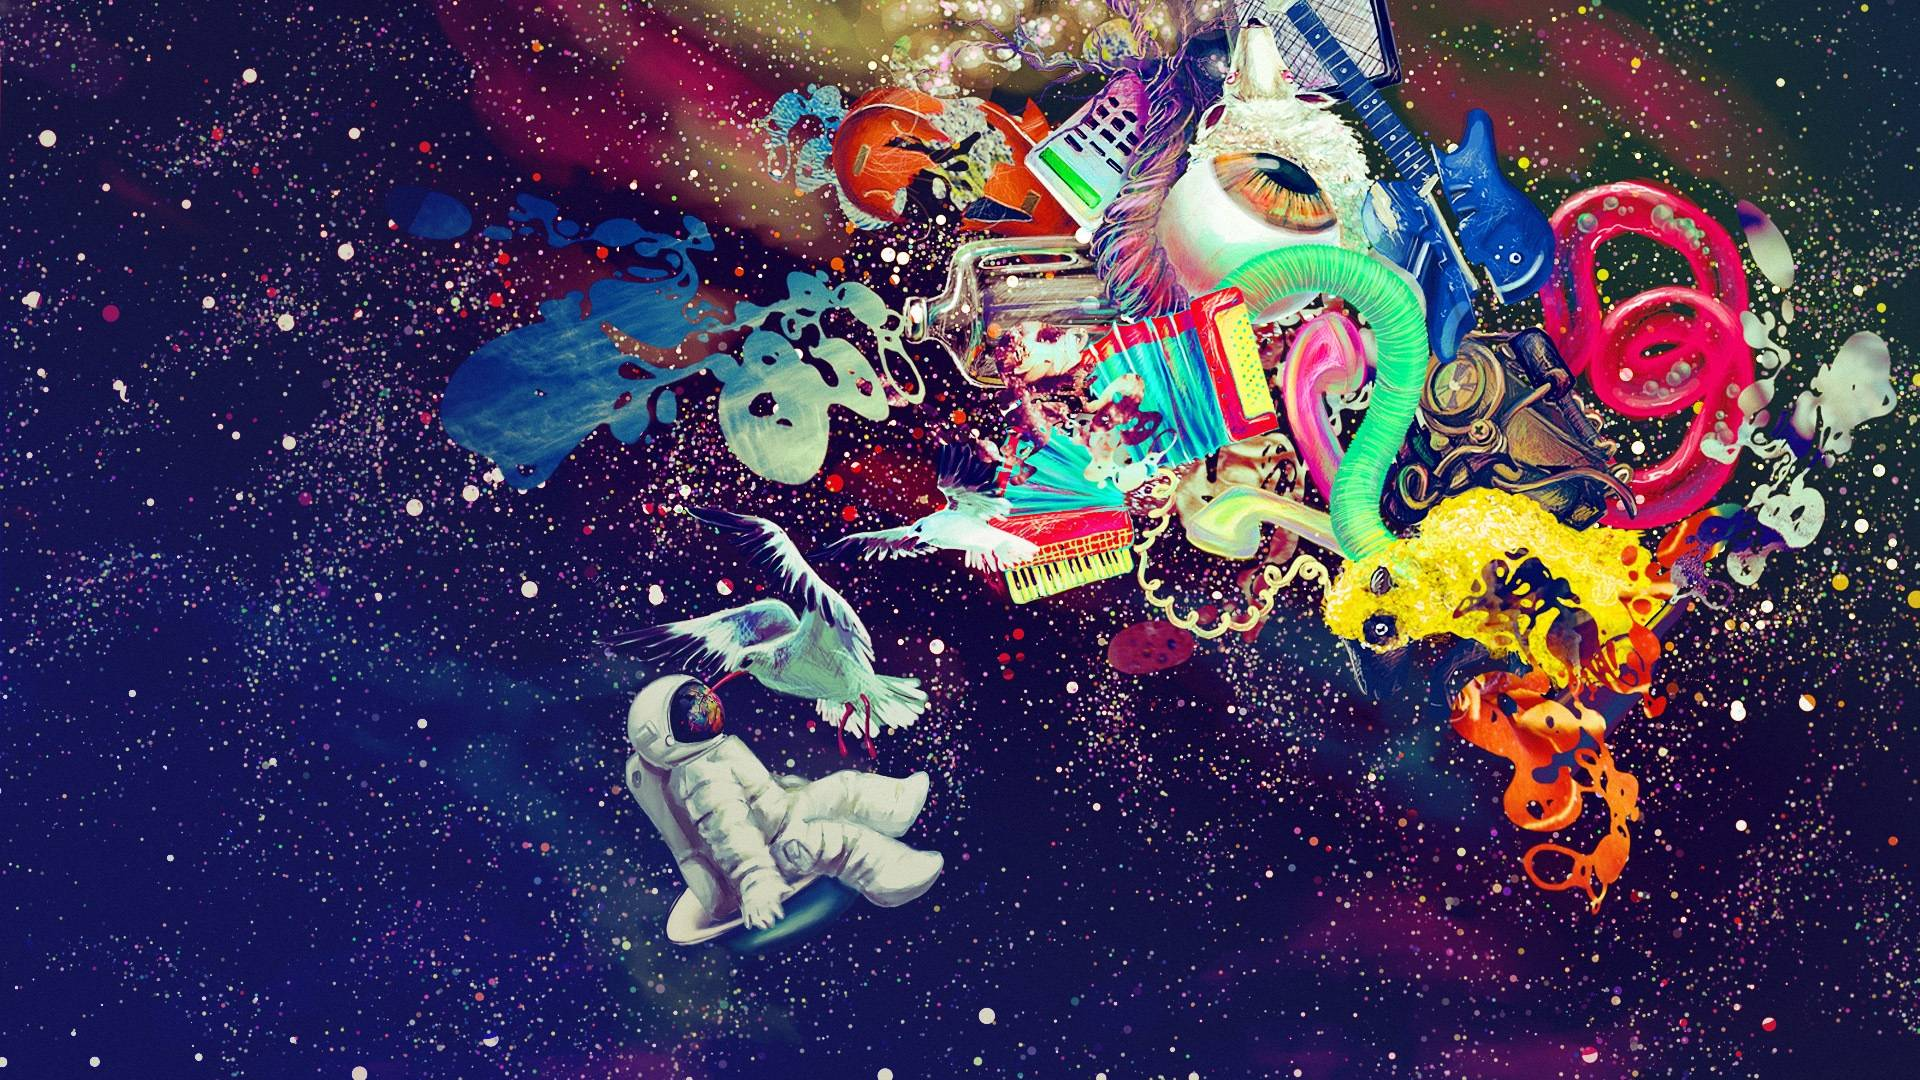 trippy backgrounds for mac 12963 full hd wallpaper desktop res